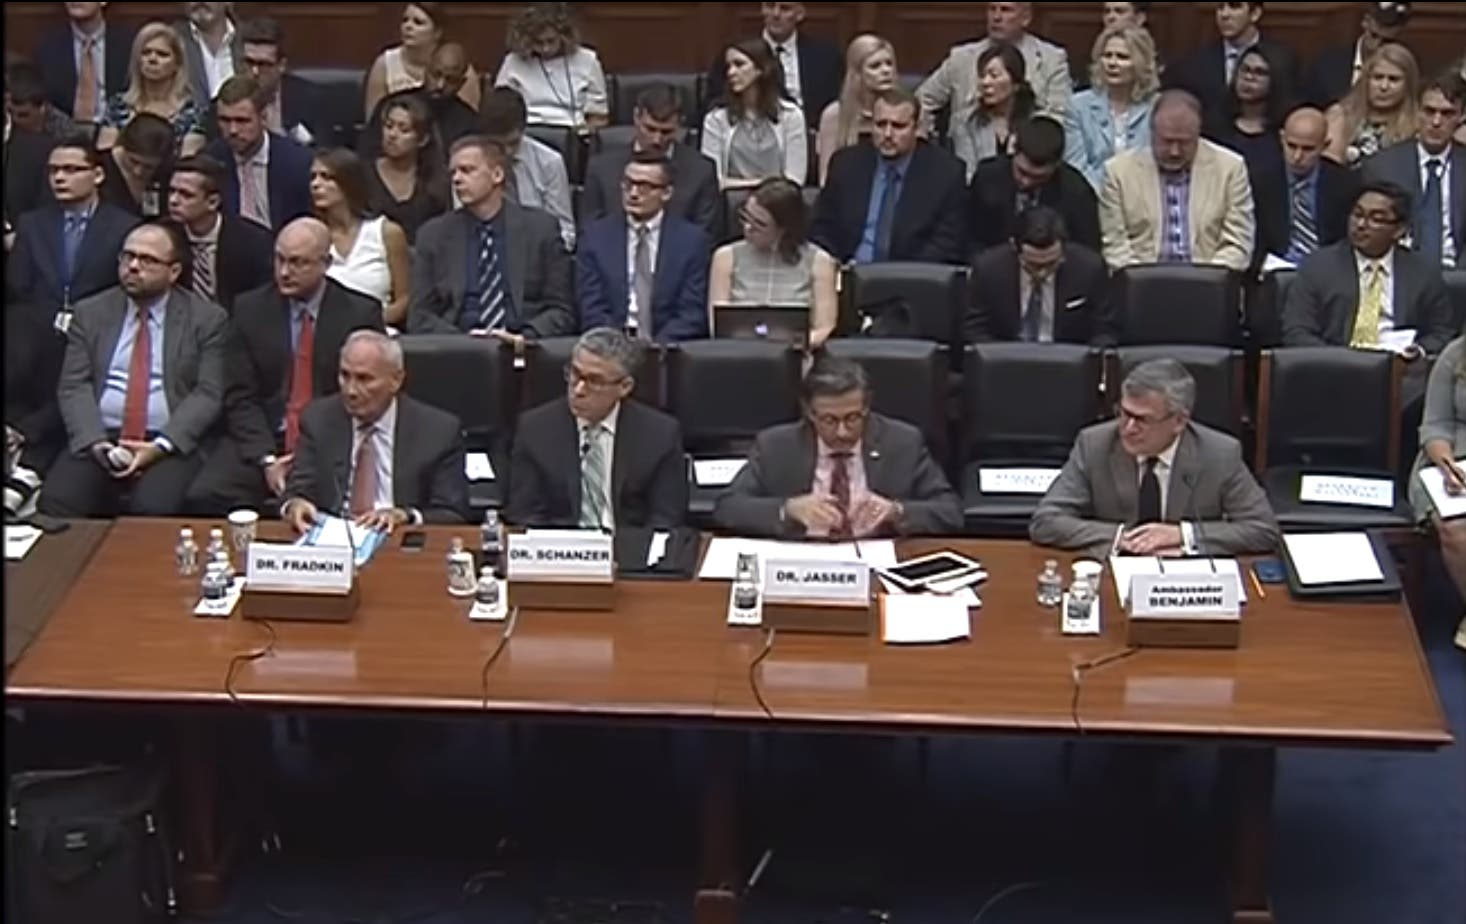 Panel of experts, including Jasser and Schanzer who spoke to Al Arabiya English, appear before the House Oversight National Security Subcommittee. (Supplied)